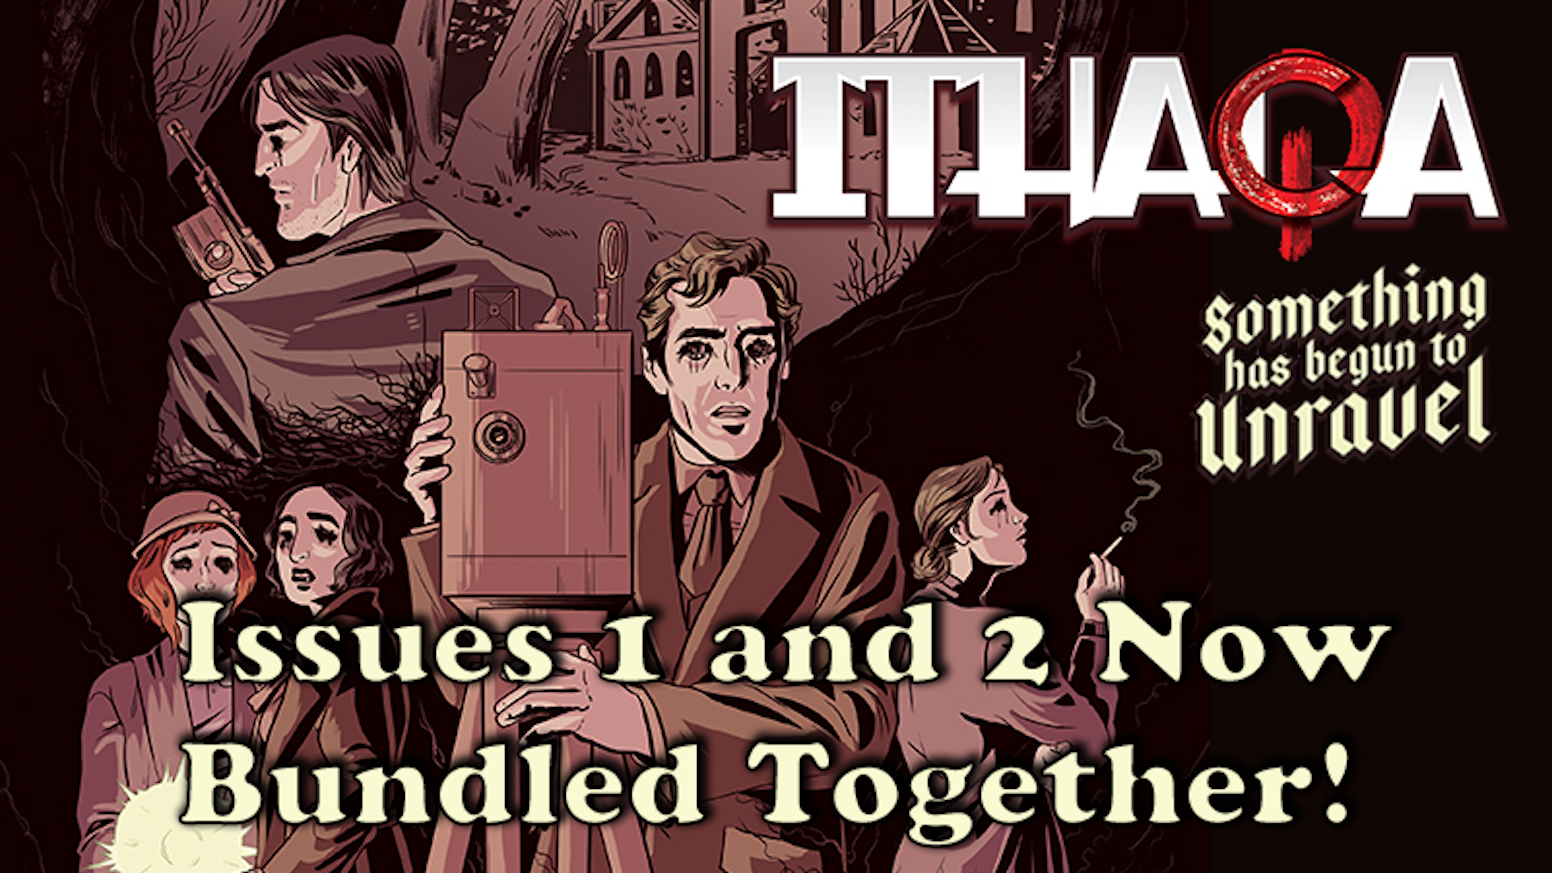 """Ithaqa"" is a Lovecraftian horror story, set during the roaring 20's, in Ithaca, New York."